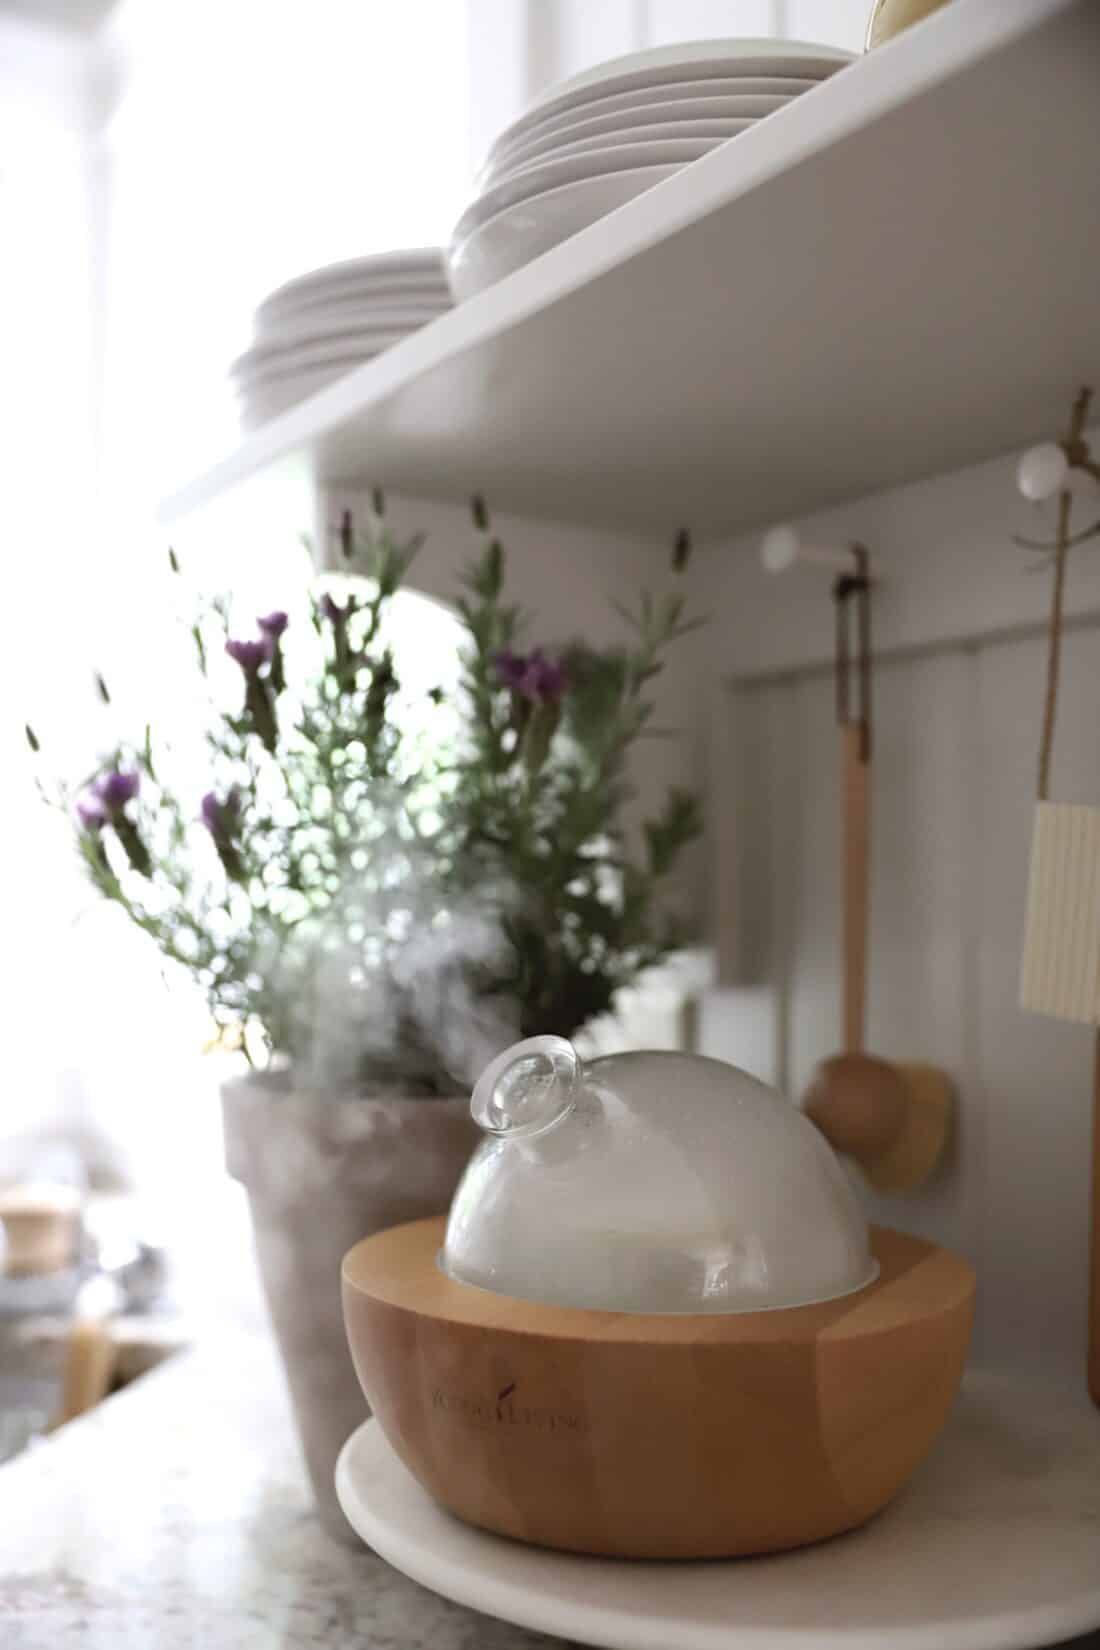 essential oil mist pouring out of aria diffuser